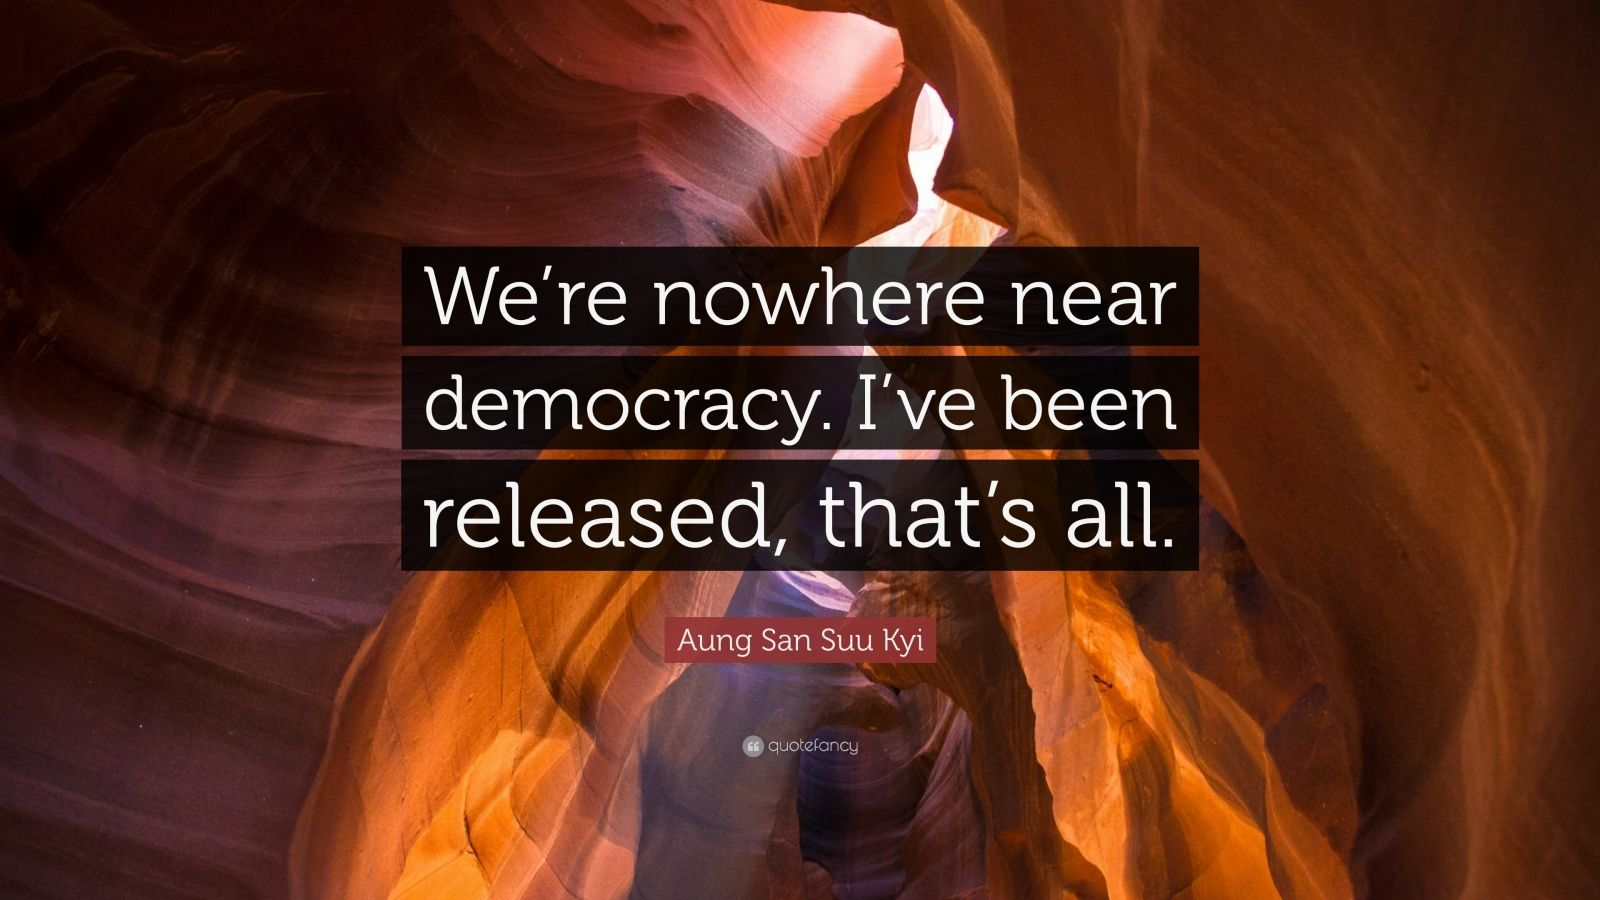 """Aung San Suu Kyi Quote: """"We're nowhere near democracy. I've been released, that's all."""""""